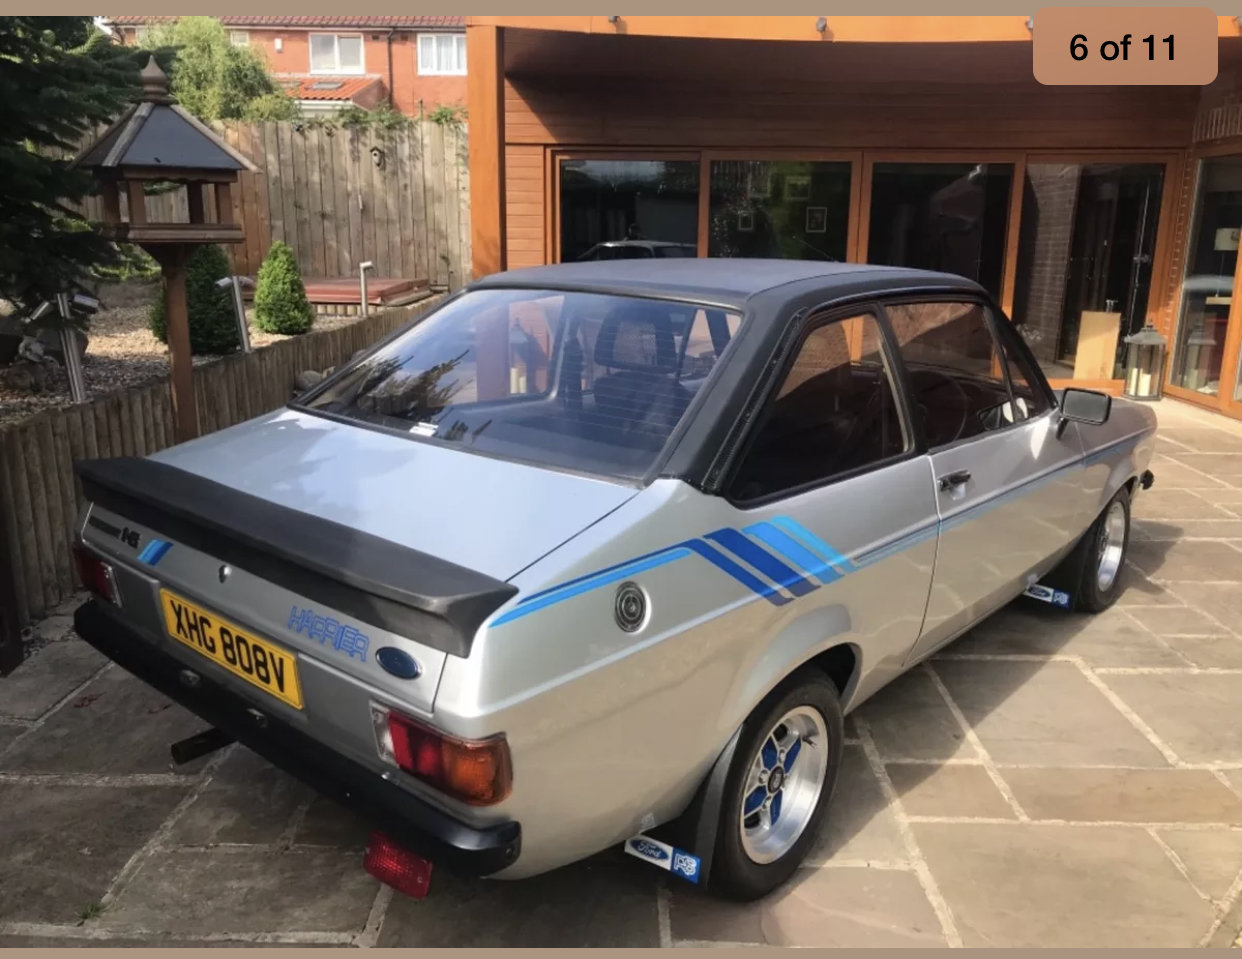 1980 Ford escort harrier 1600cc, strato silver For Sale (picture 3 of 6)